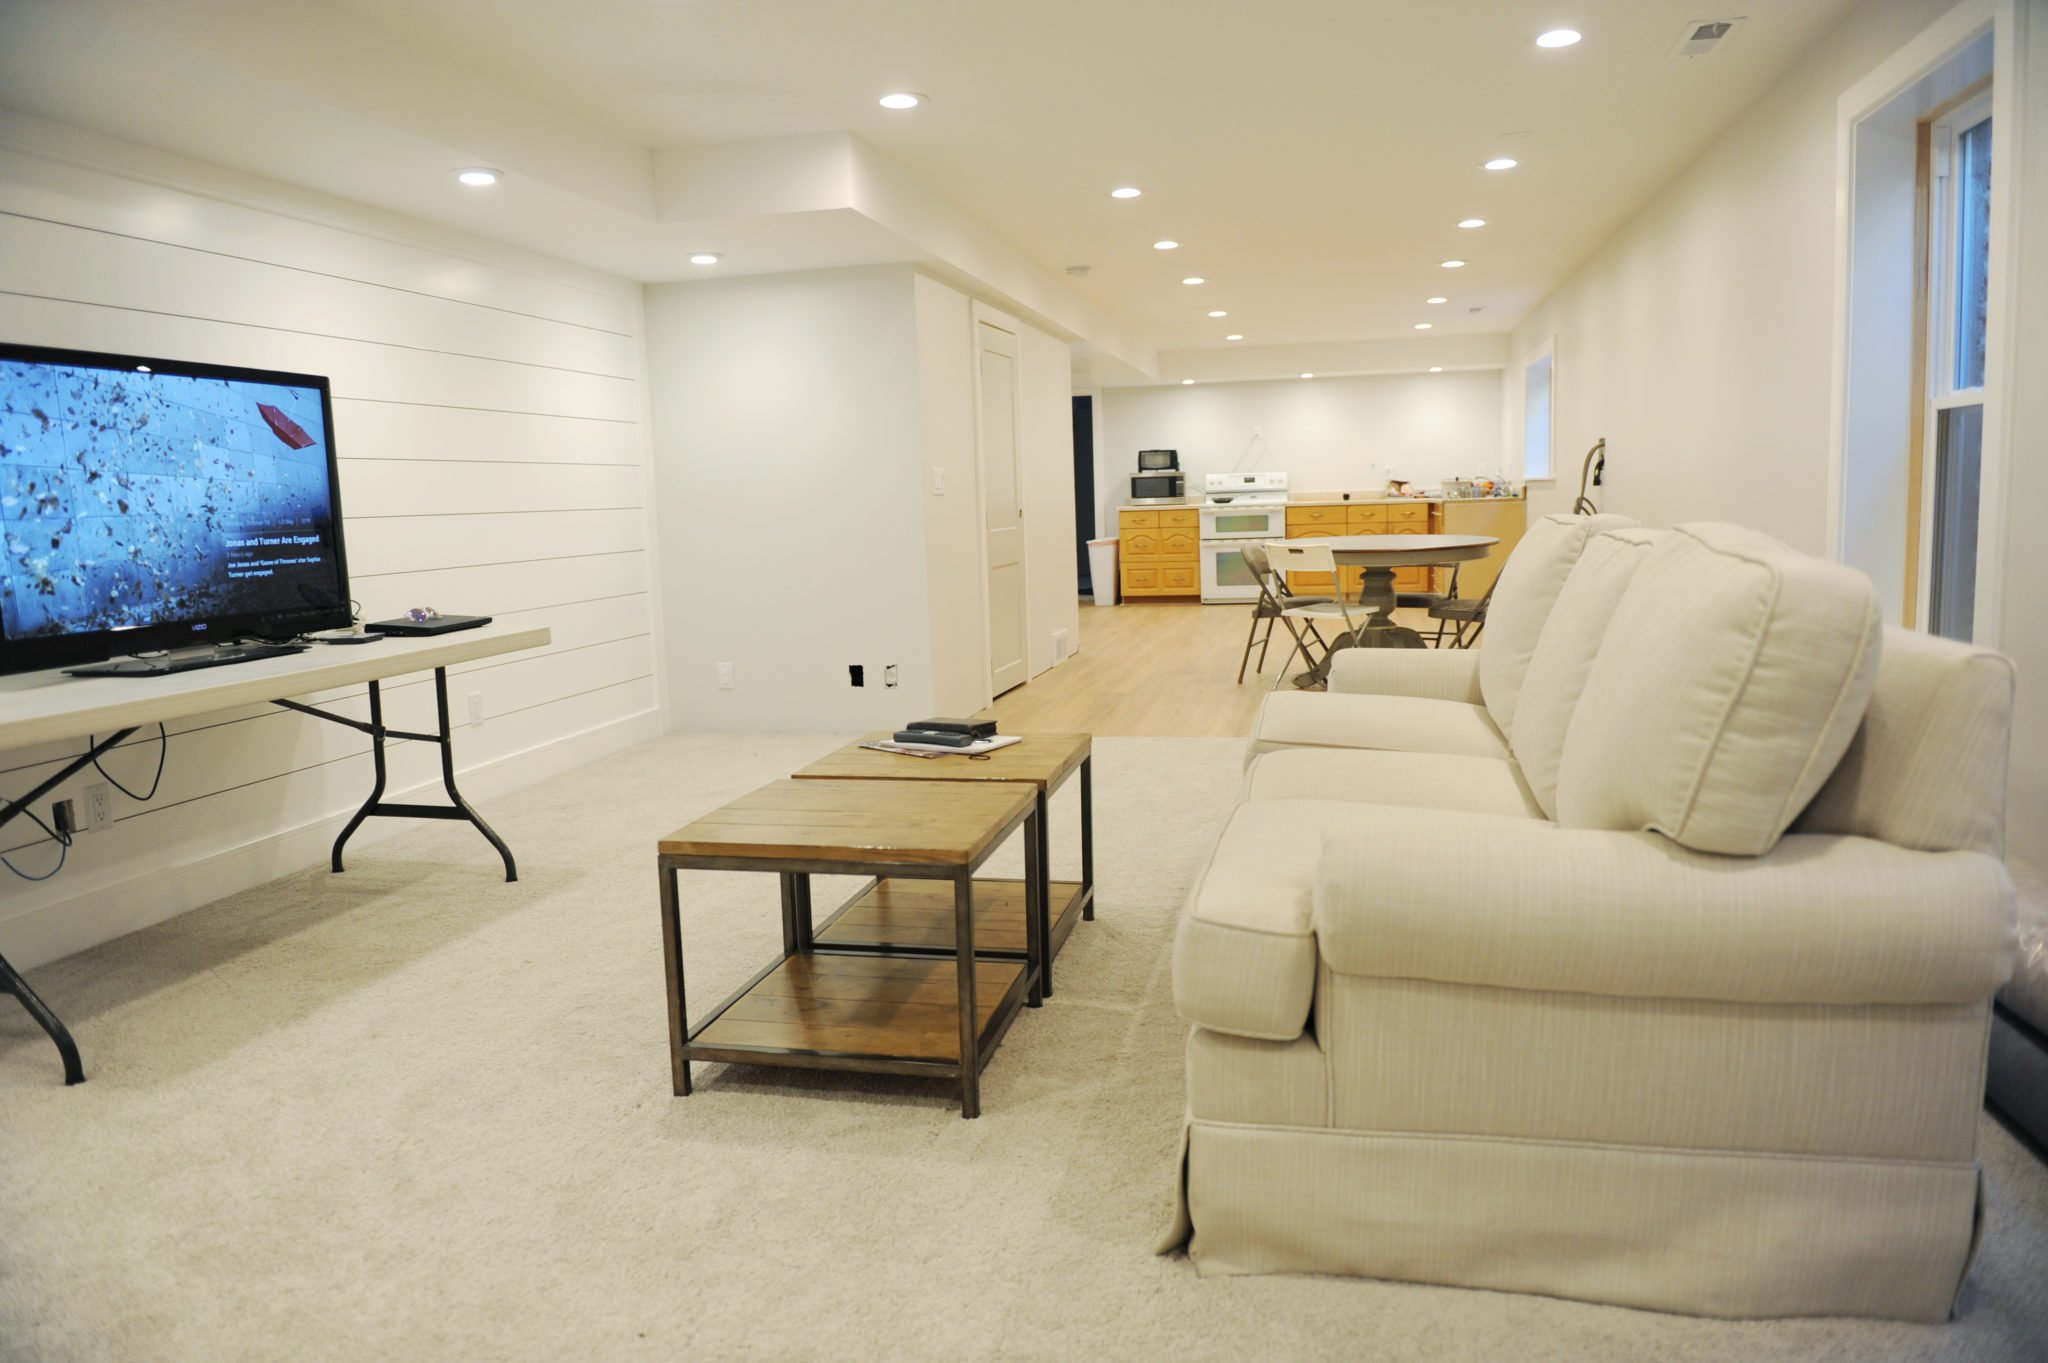 basement remodels before and after. Simple And Basement Renovation Before And After Inside Basement Remodels Before And After